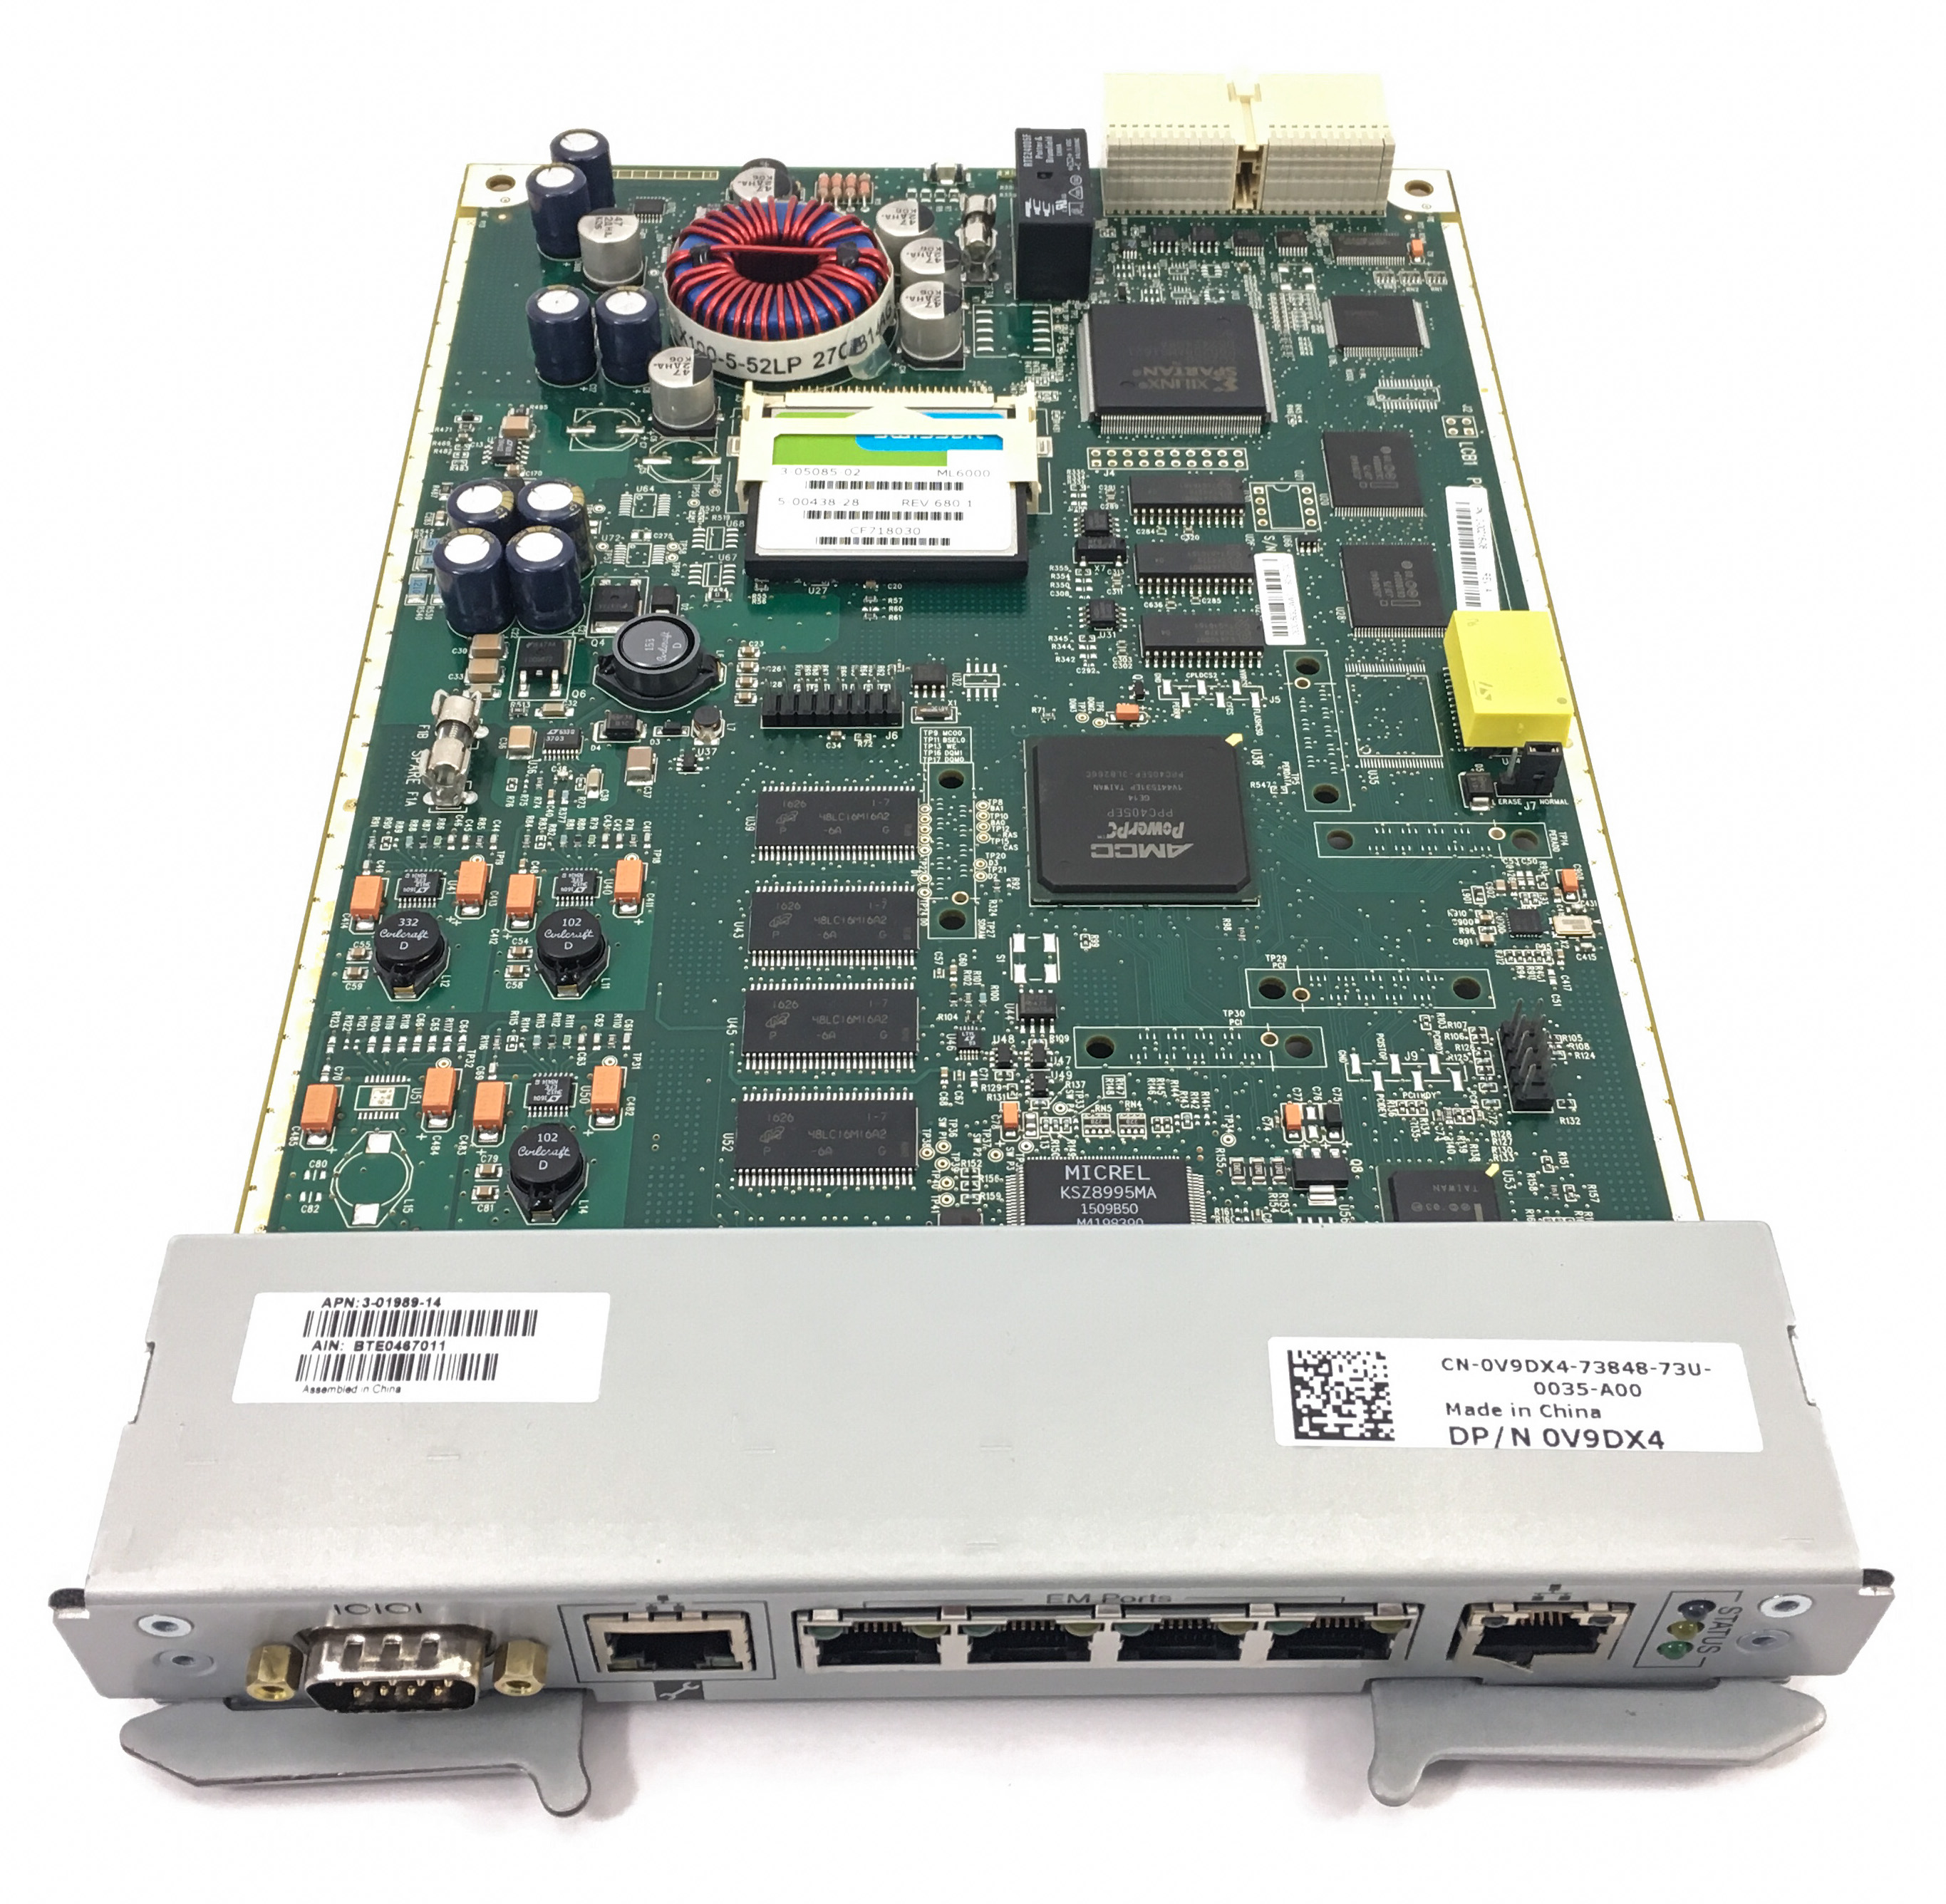 Dell Powervault Ml6000 Tape Library Controller Card (V9DX4)